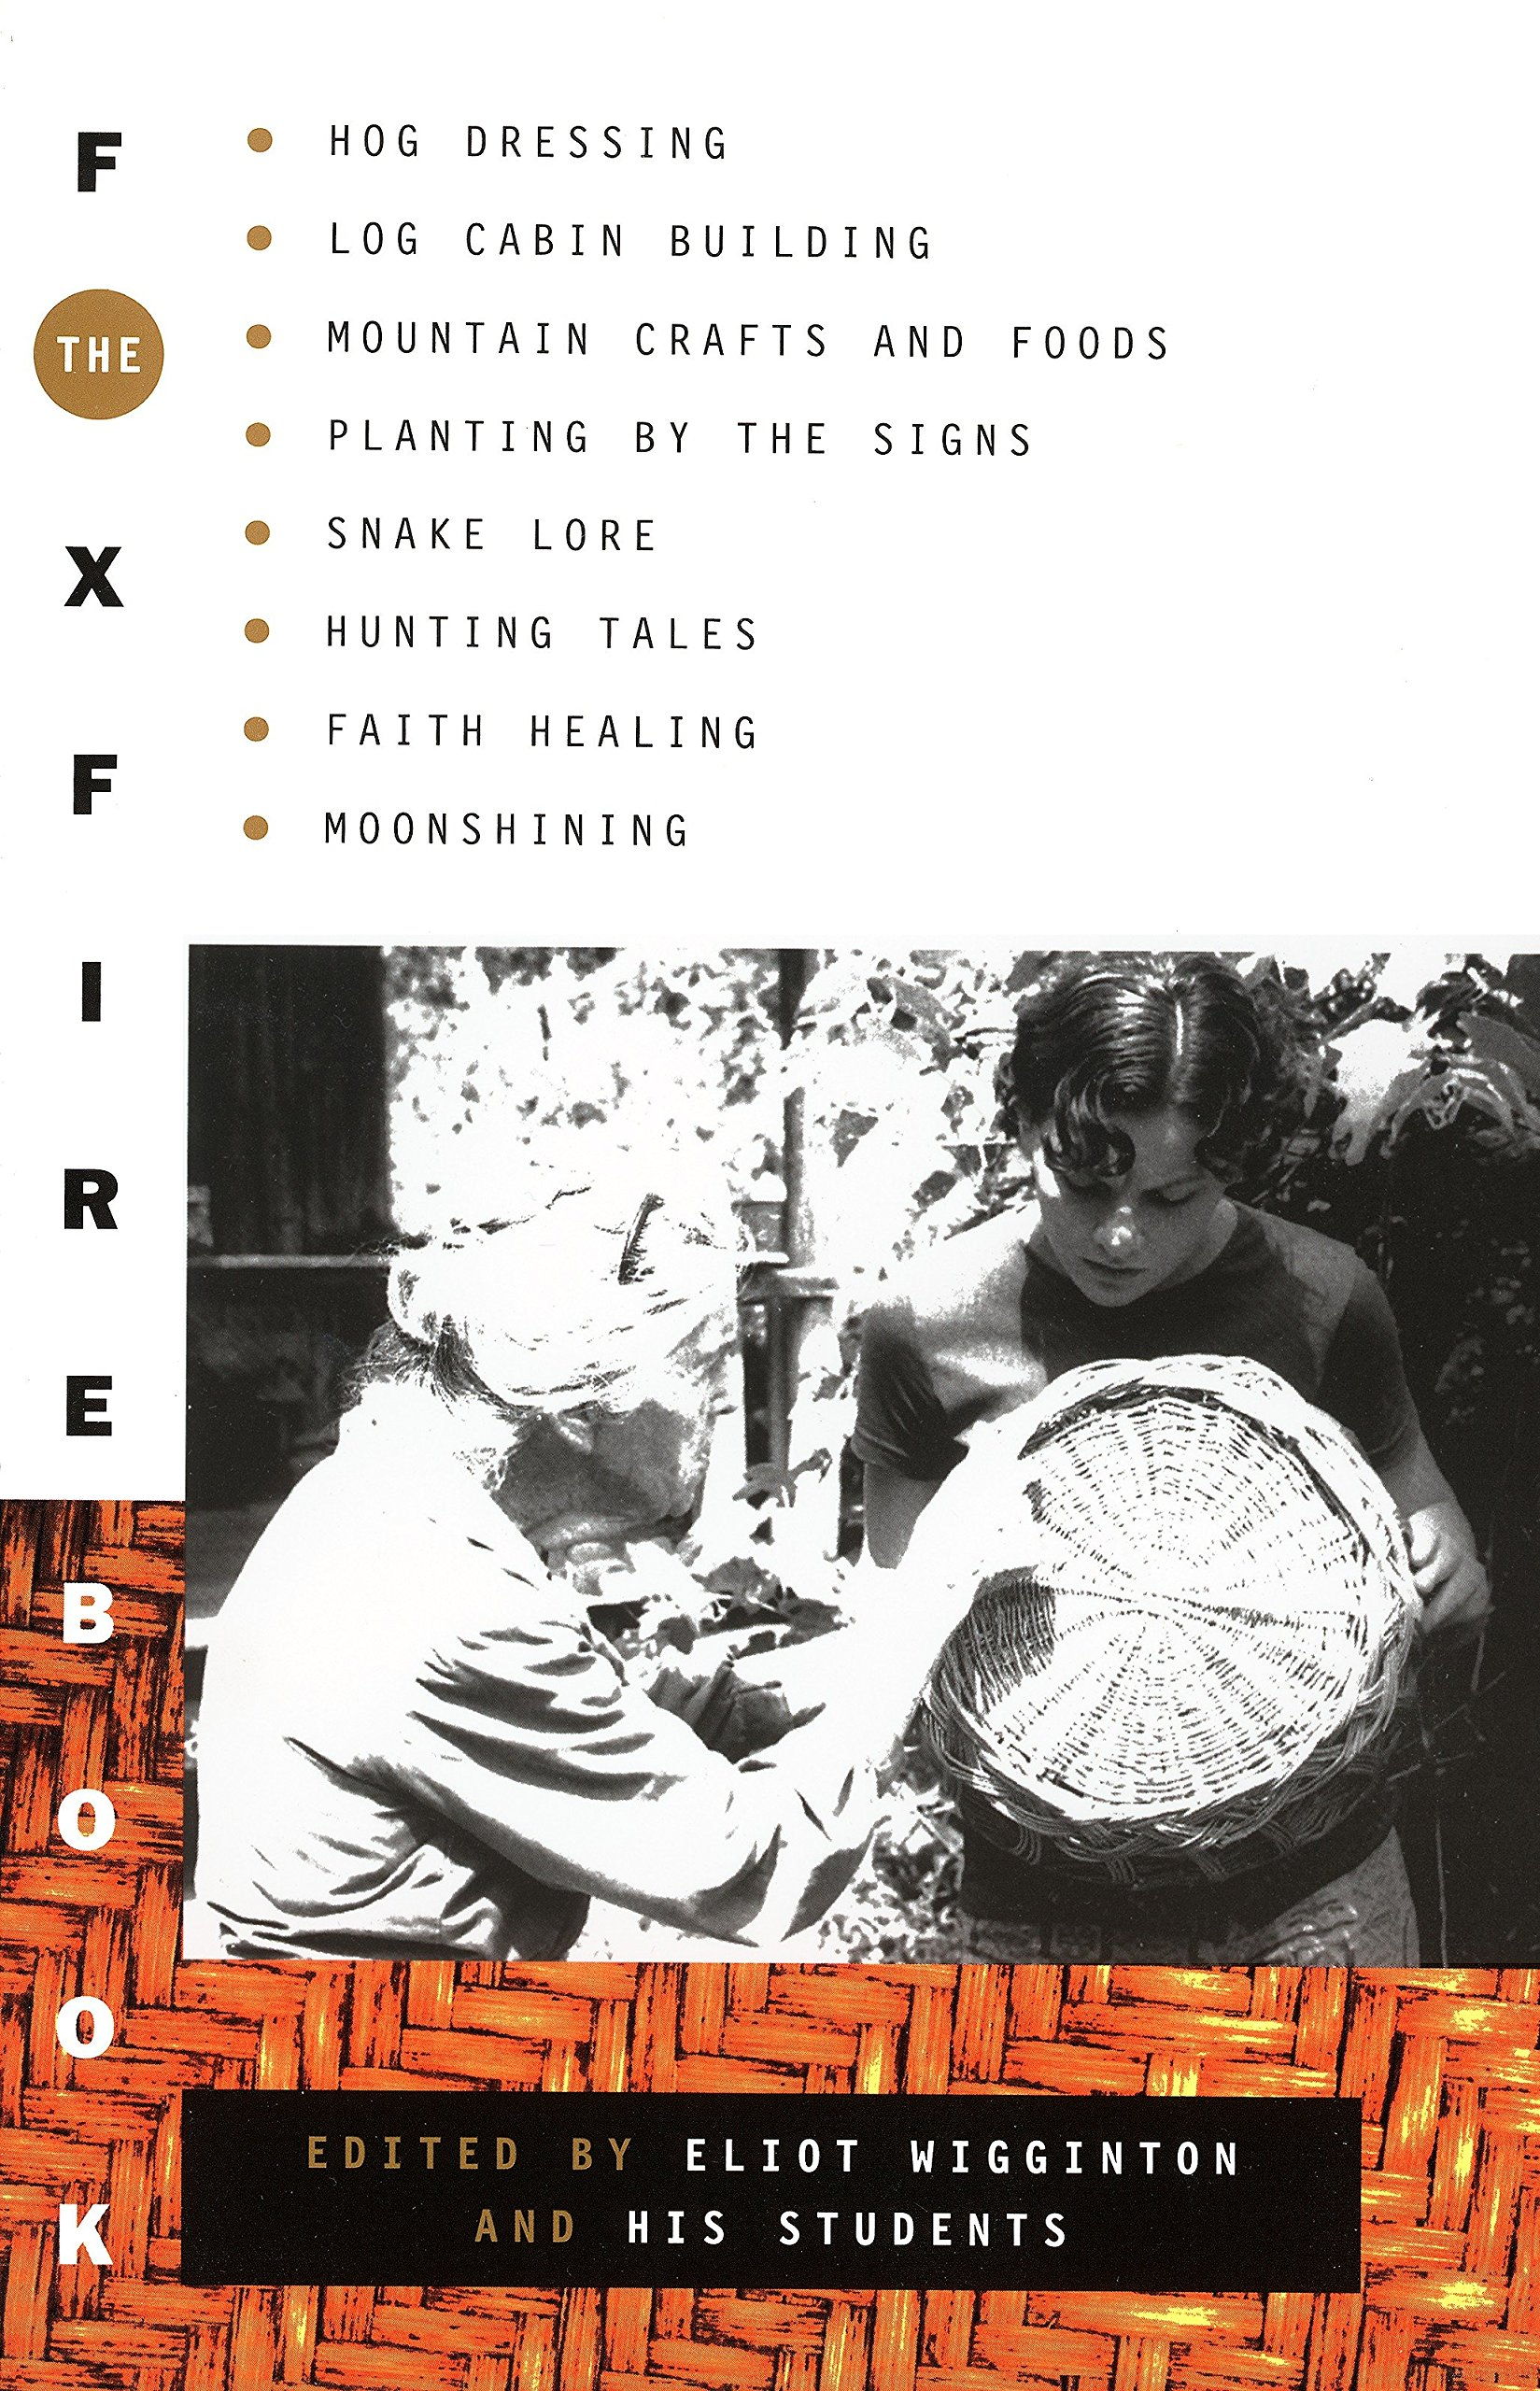 The Foxfire Book: Hog Dressing Log Cabin Building Mountain Crafts and Foods Planting by the Signs Snake Lore Hunting Tales Faith Healing Moonshining (Foxfire Series Band 1)